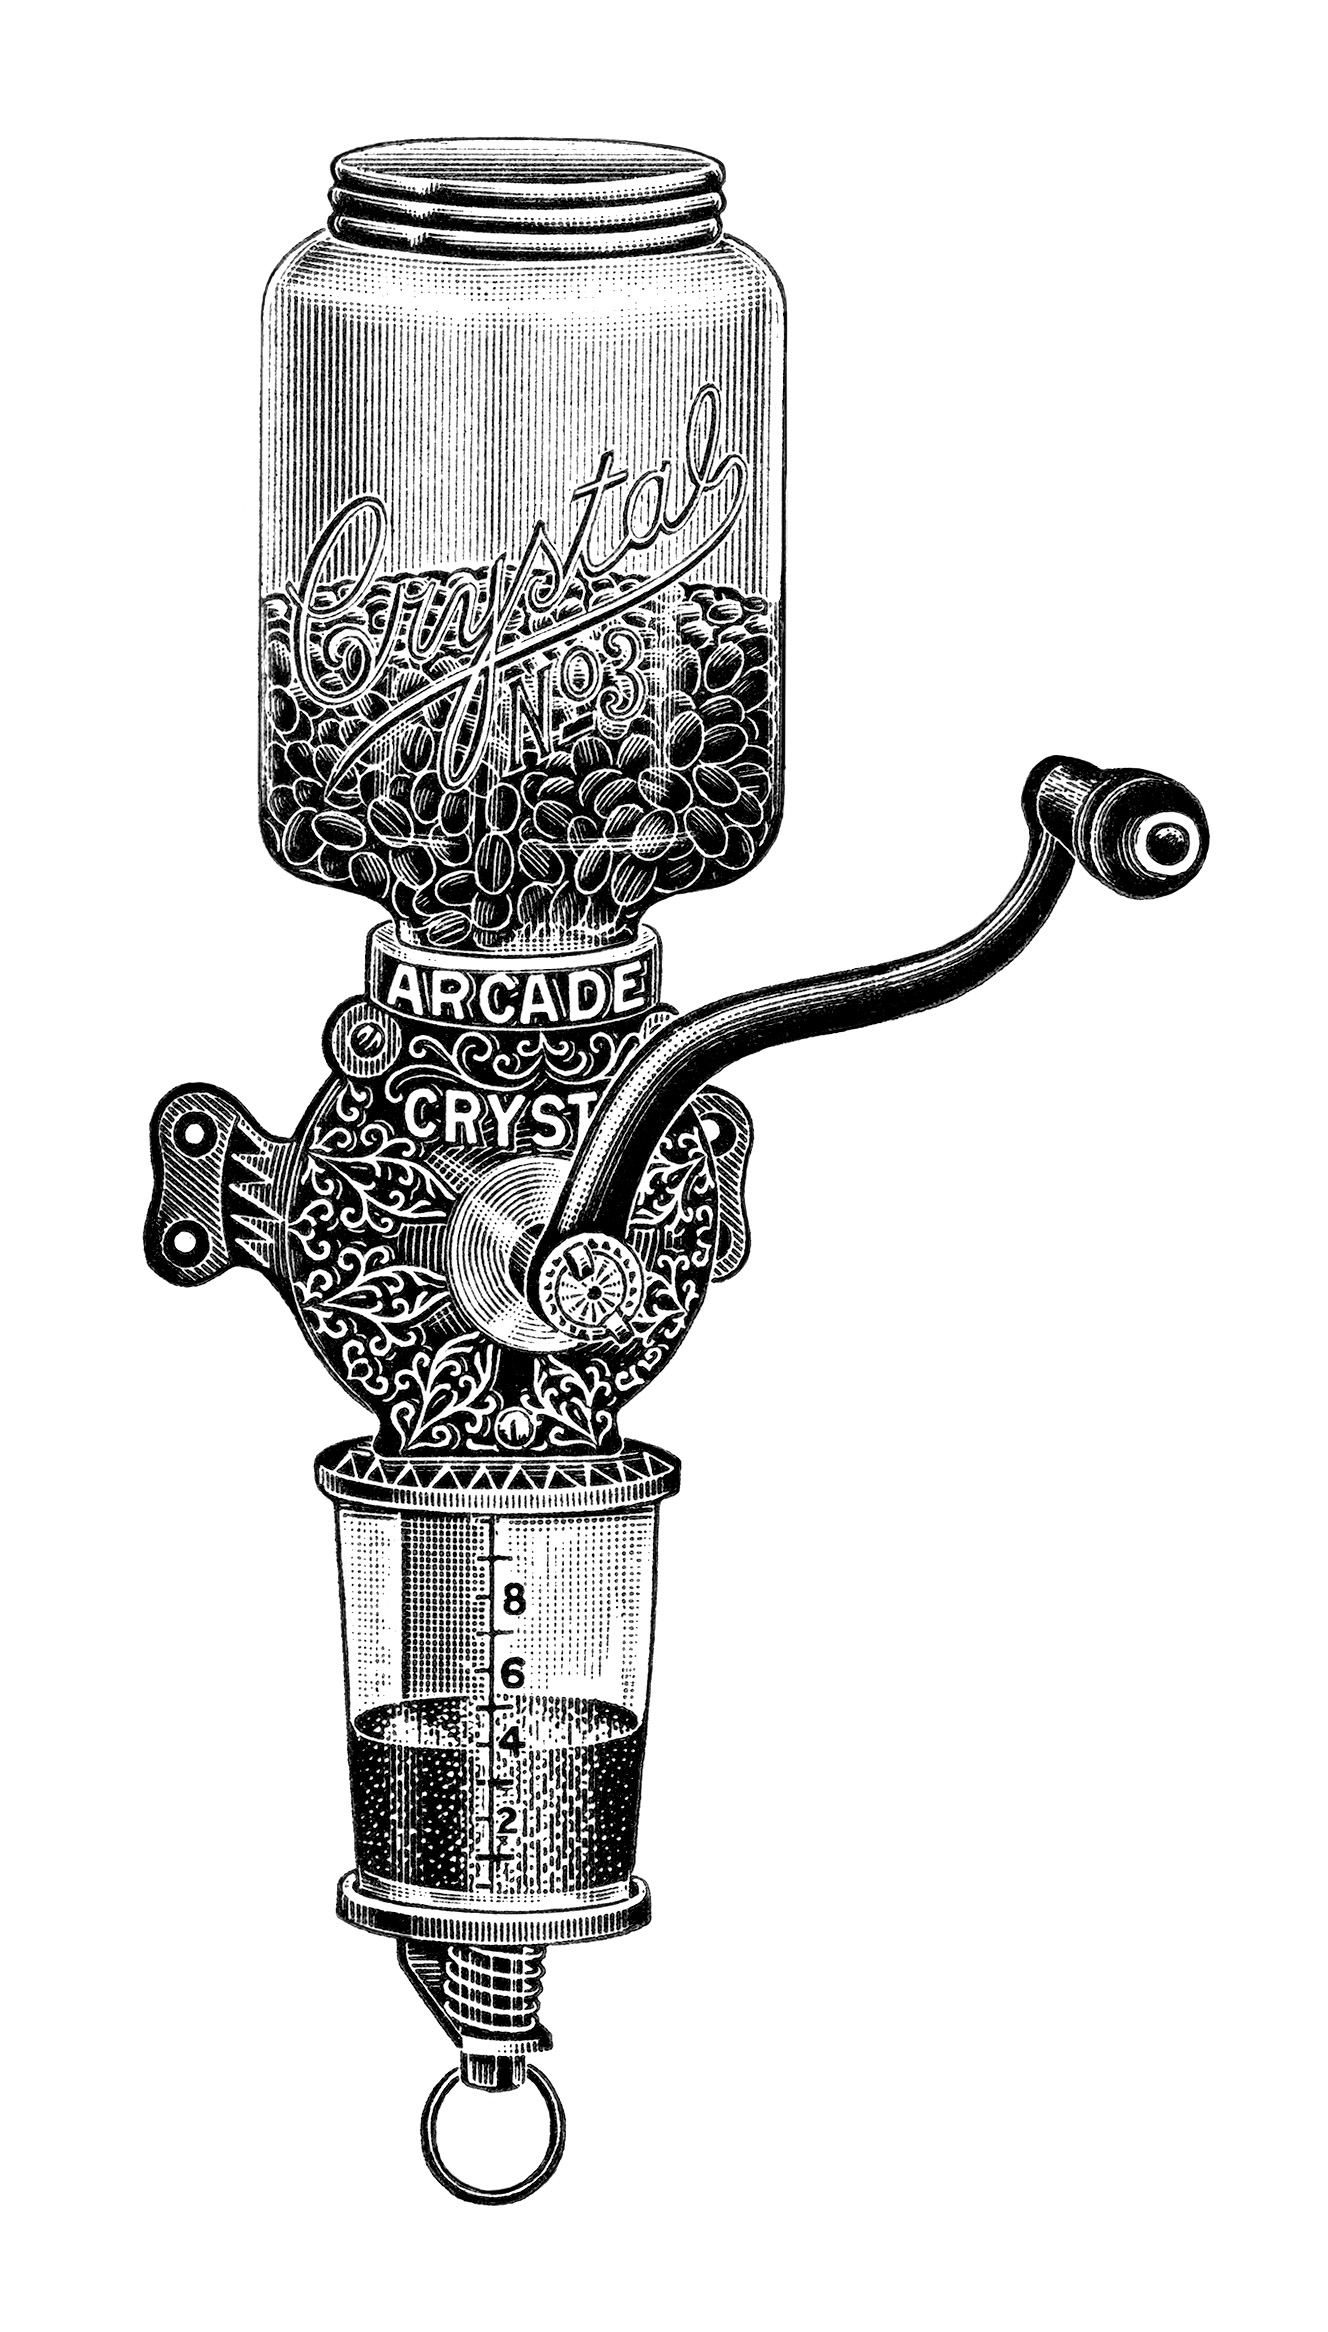 Arcade Crystal Coffee Grinder Ad And Clip Art Old Design